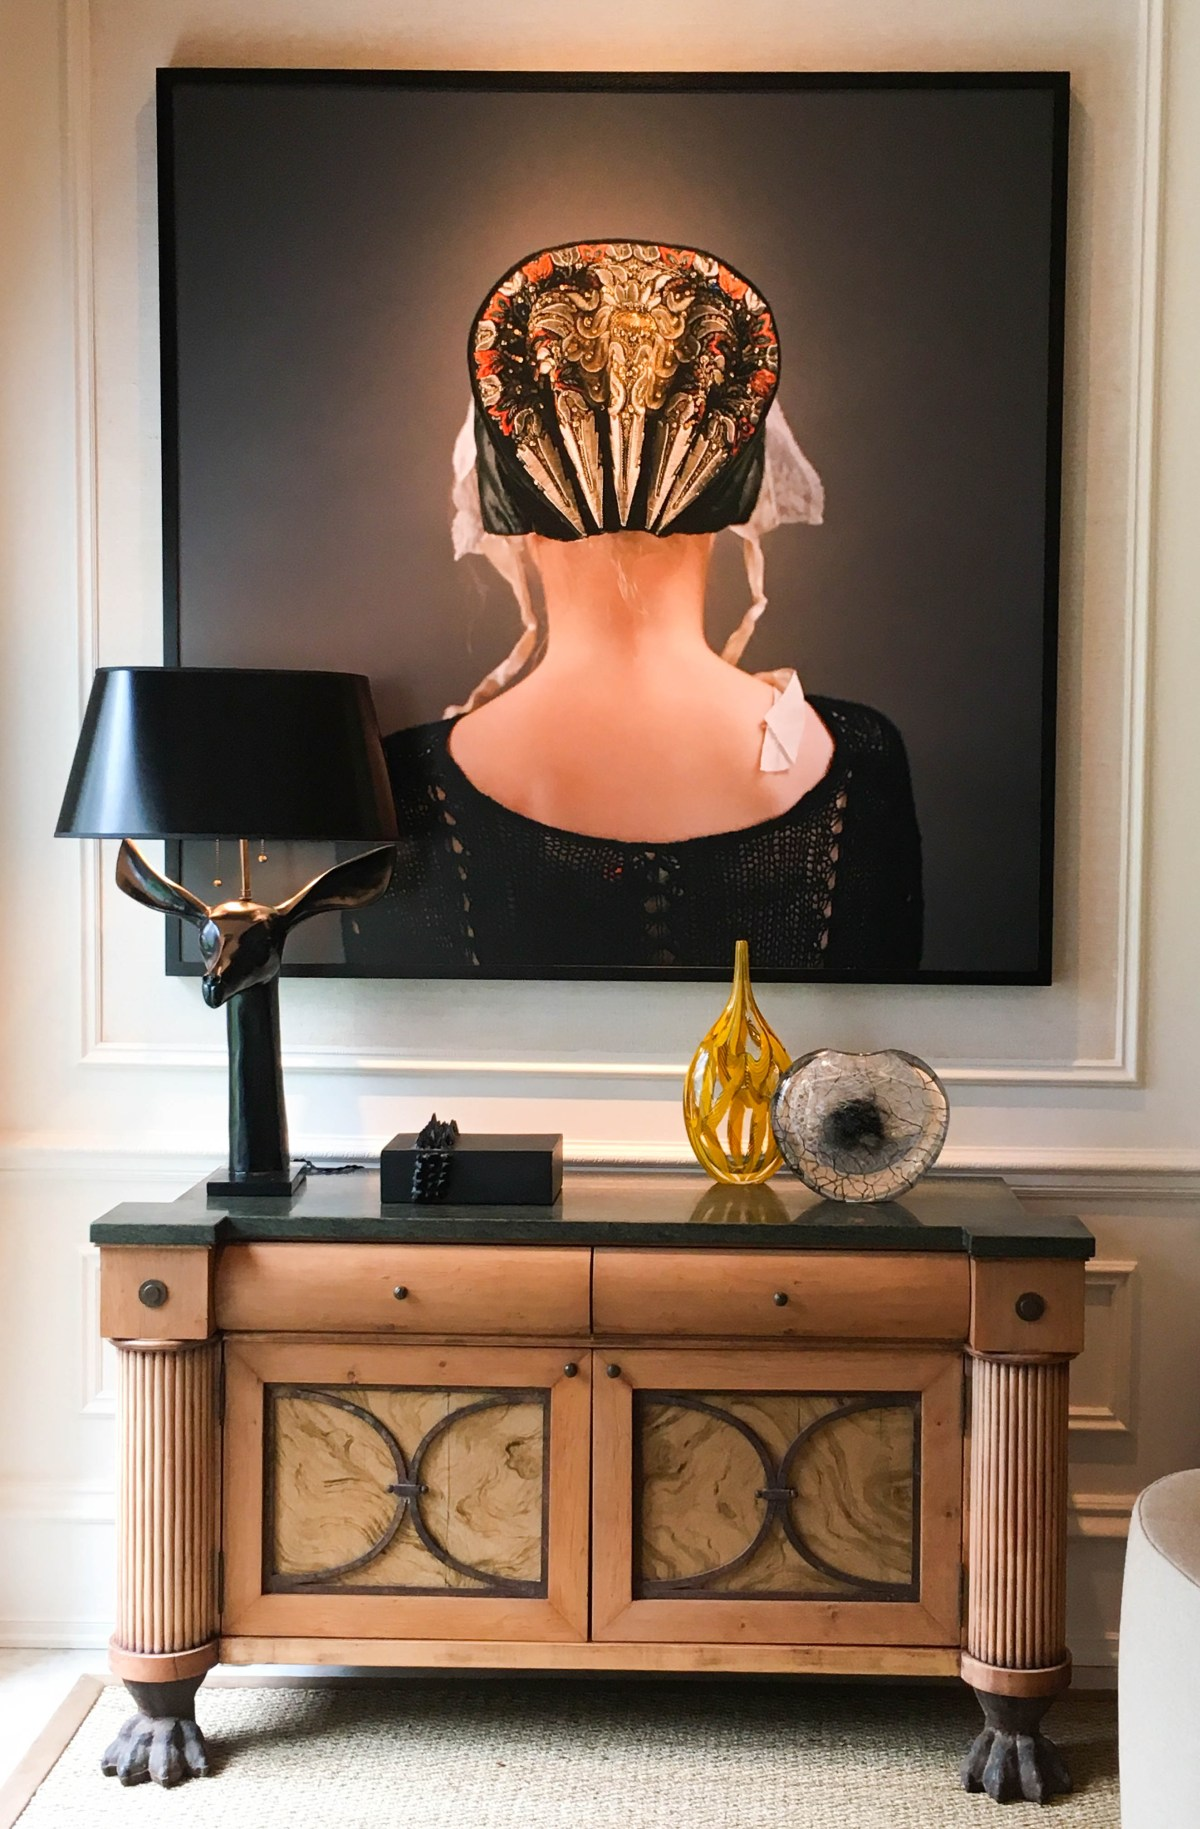 Stunning art piece by Trine Sondergaard features the head and shoulders of a woman from behind, making her intricately designed bonnet the main focus of this contemporary portrait.